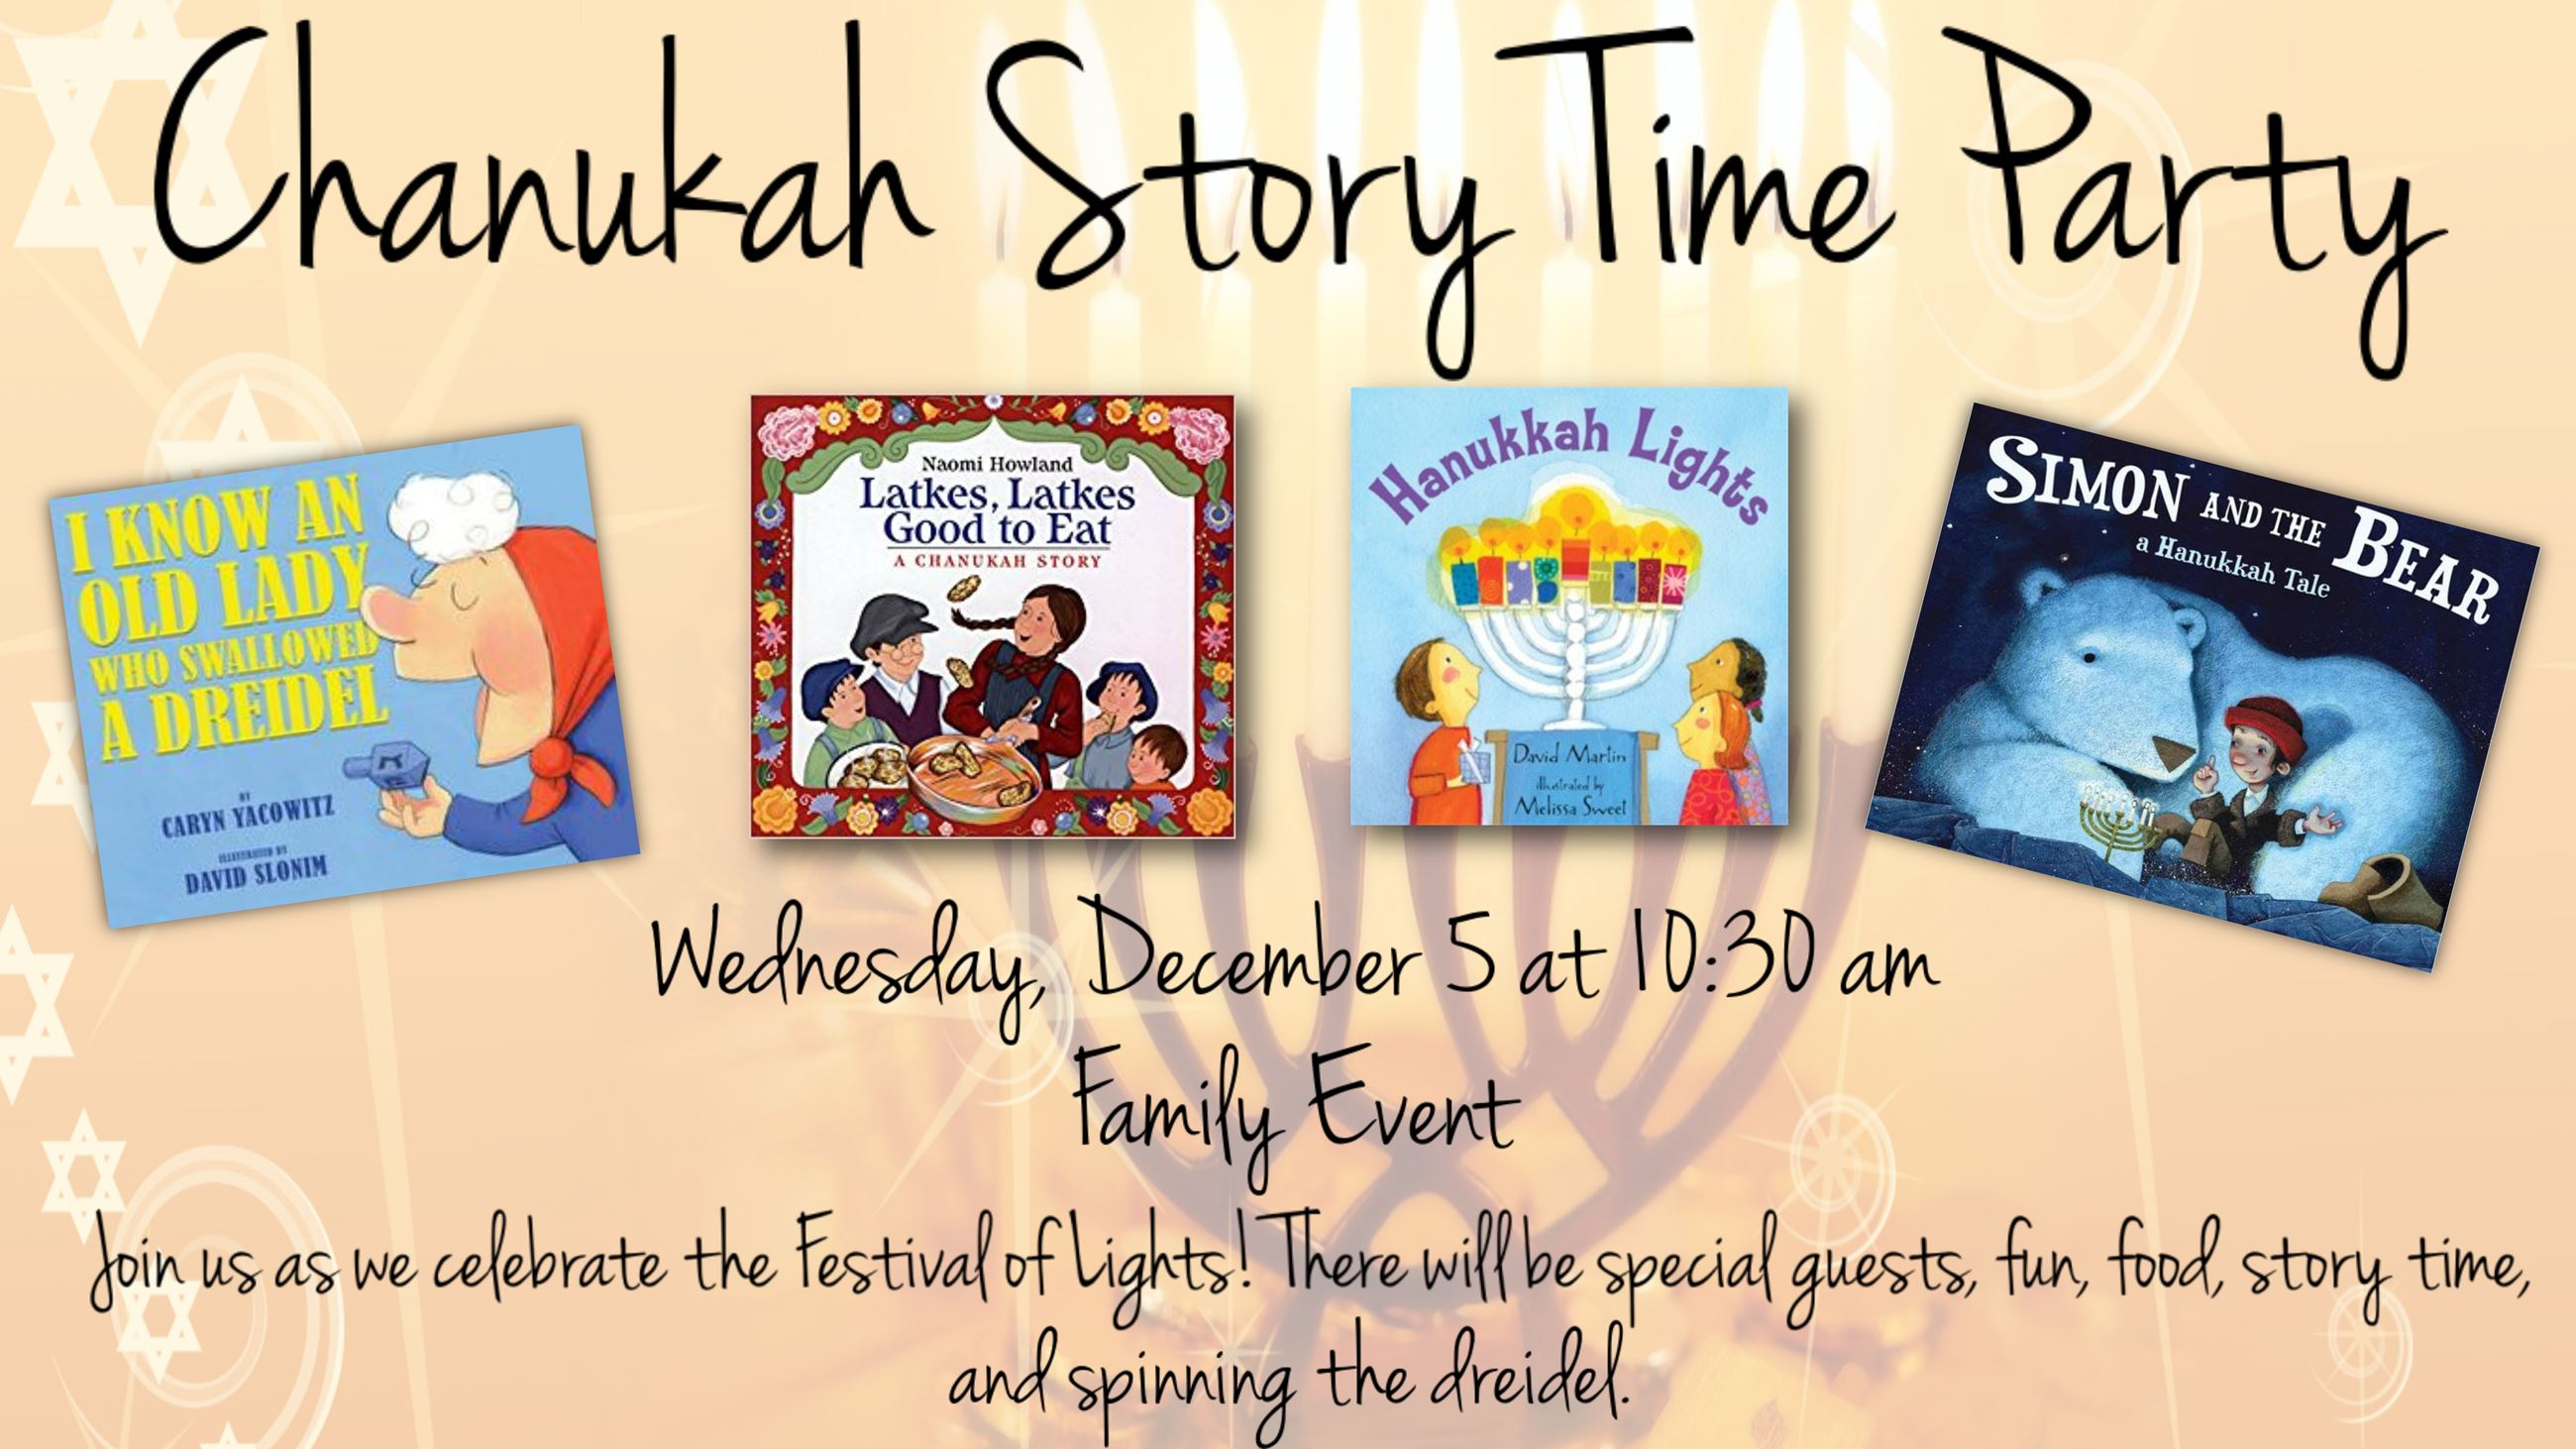 Chanukah Story Time Party. December 5 at 10:30 a.m. Famoly event. Celebrate the Festival of Lights.